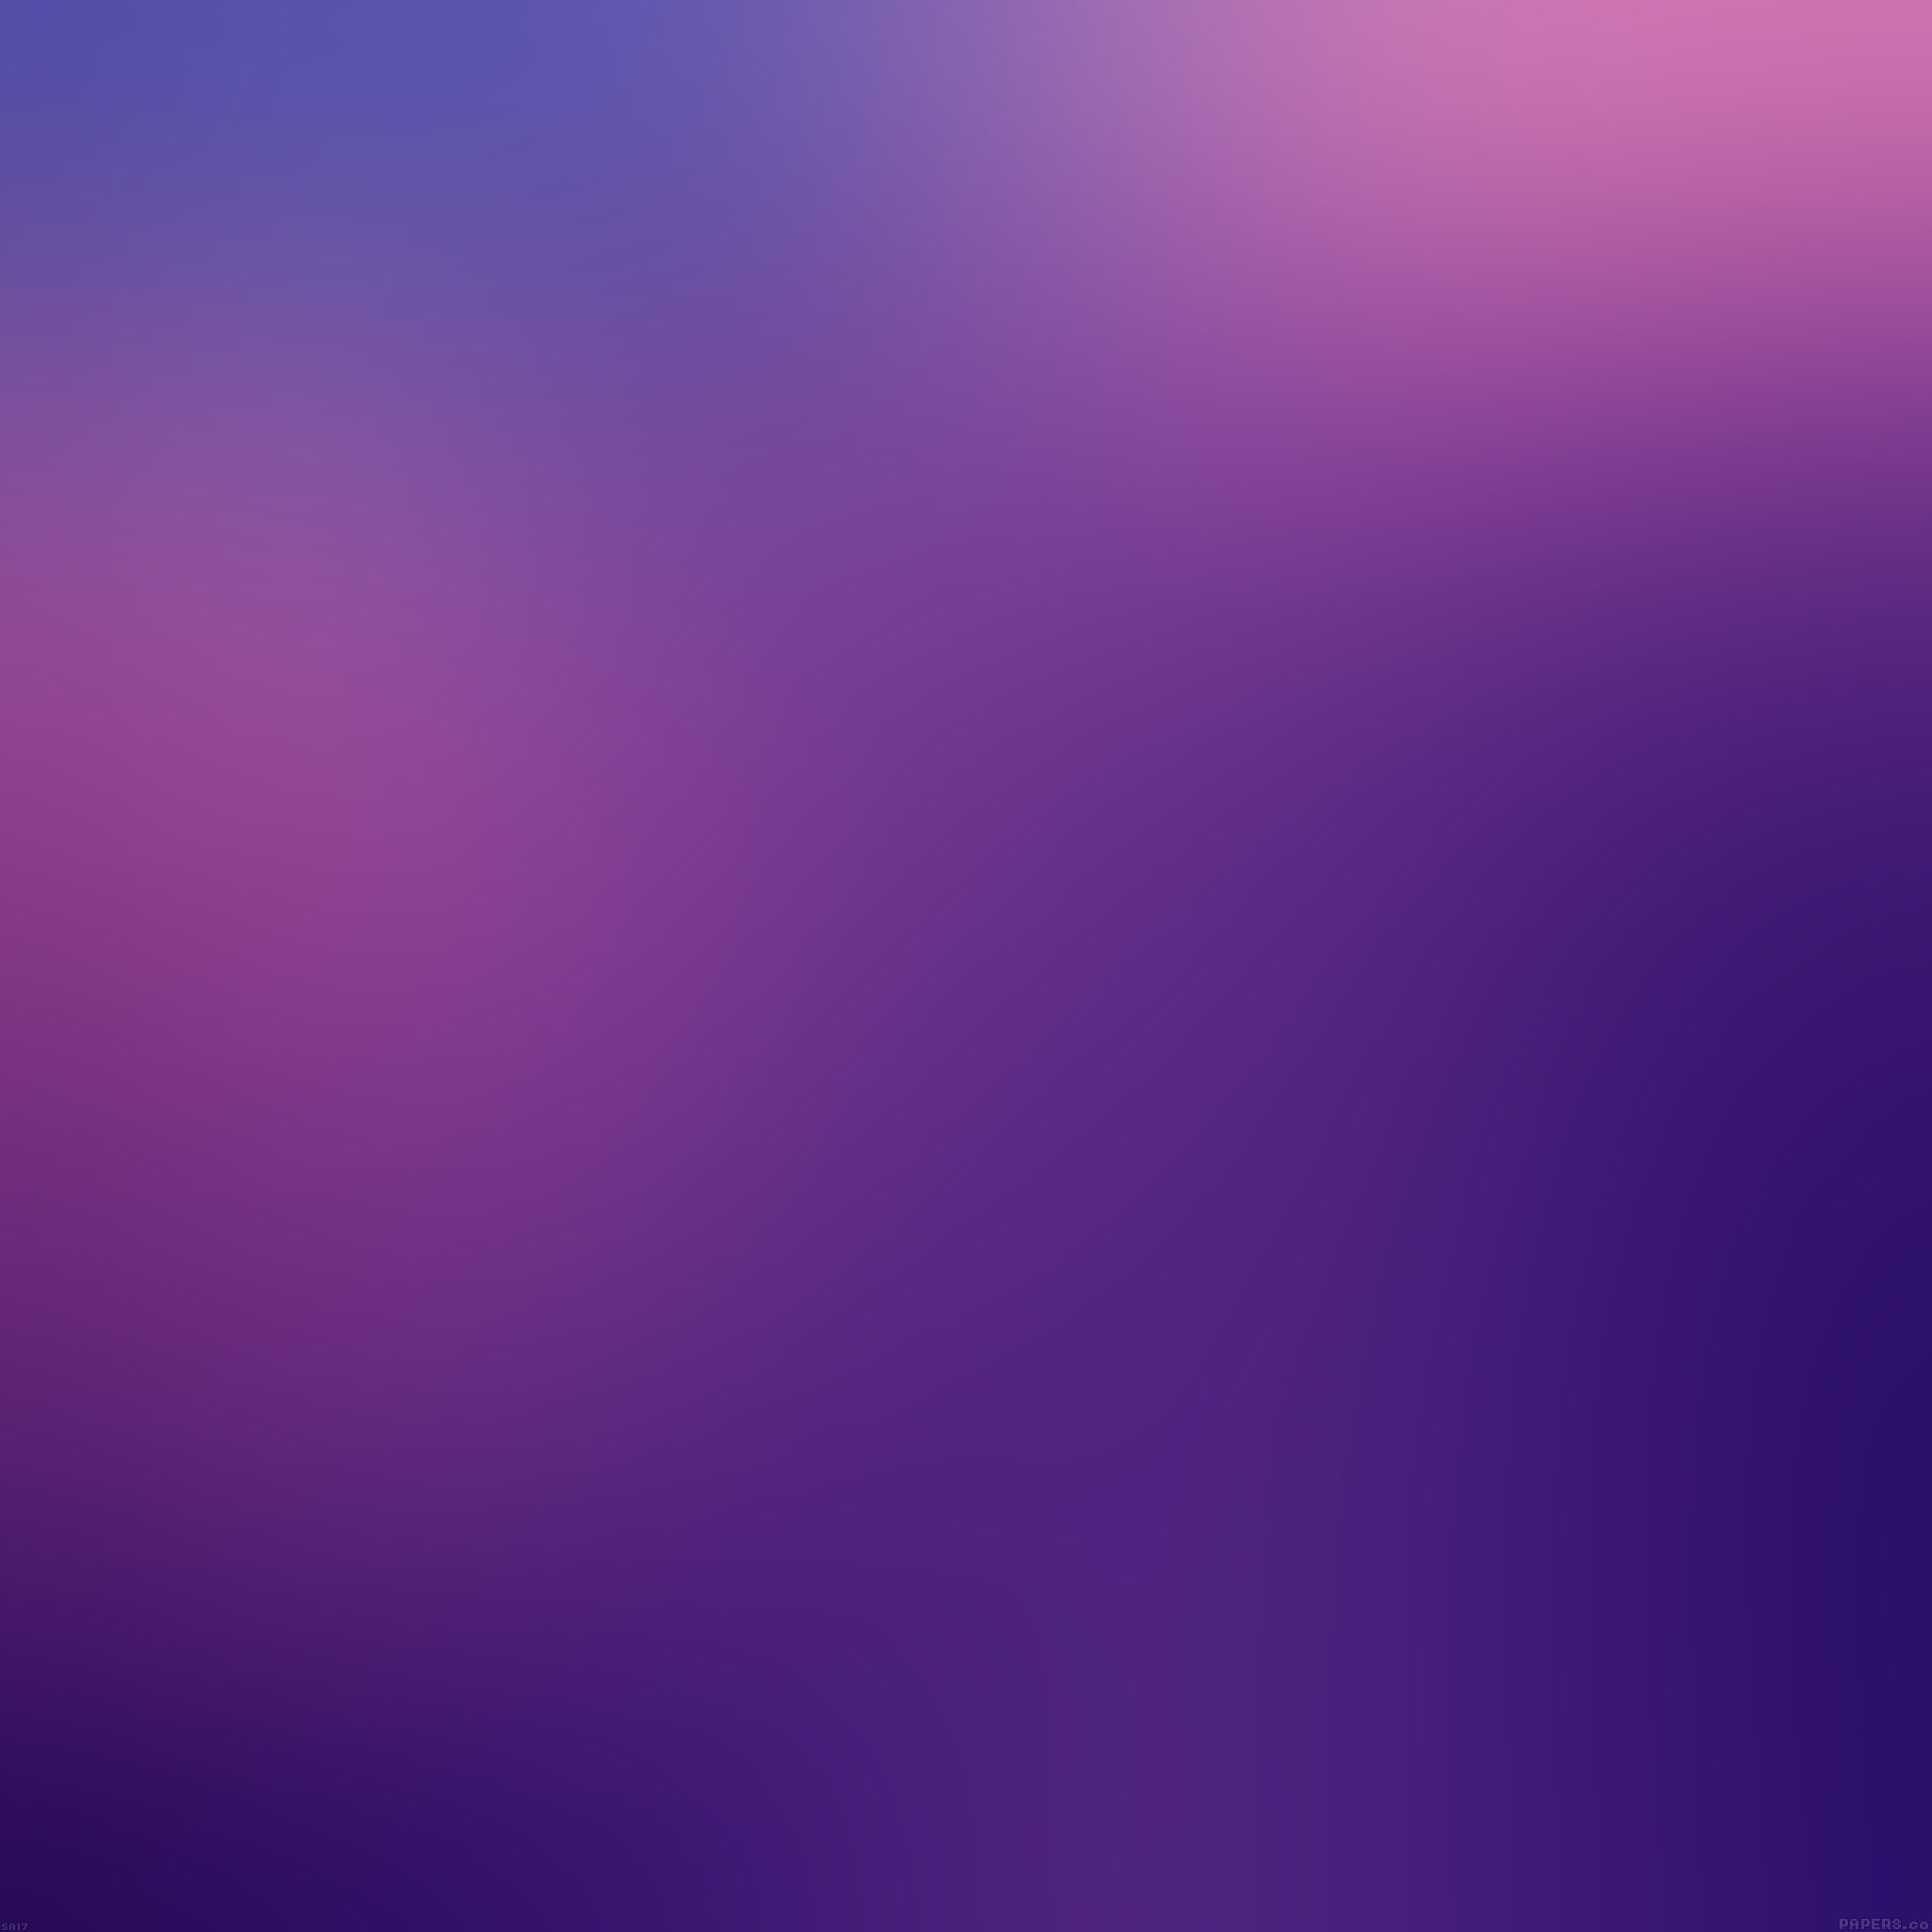 Pink Wallpaper For Iphone 6 Plus Sa17 Blurred Purple Papers Co